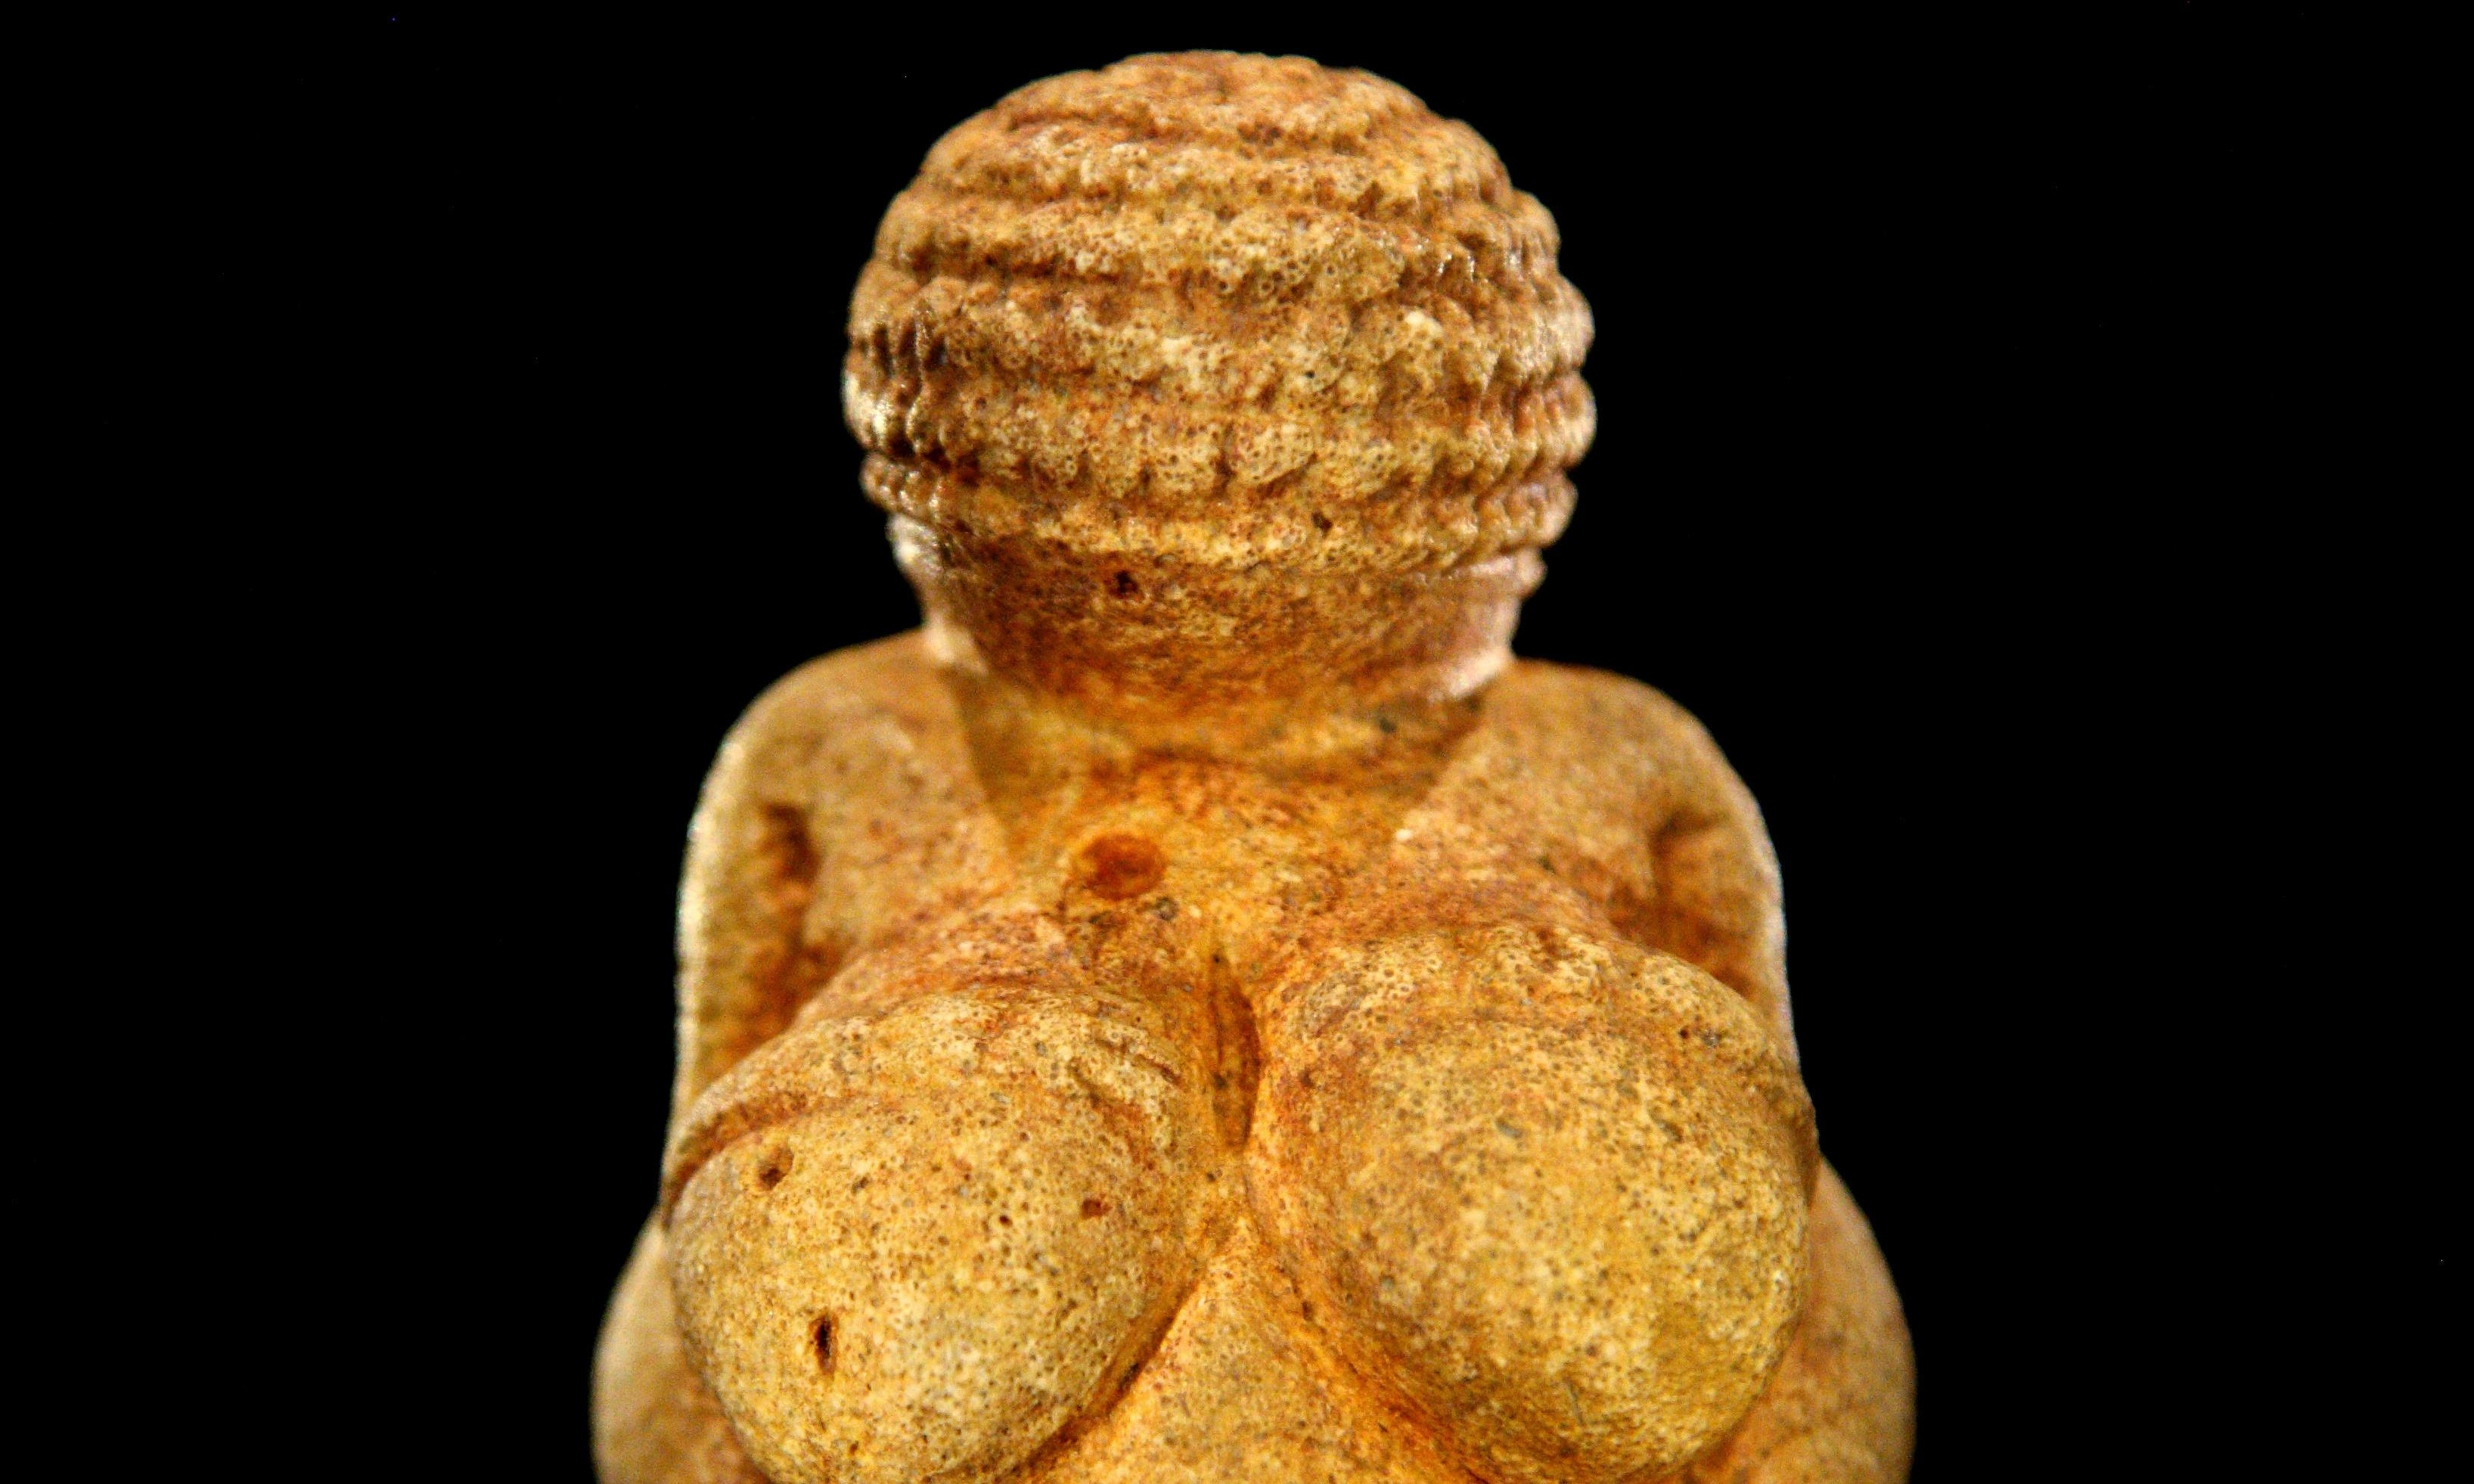 The female body and the origins of patriarchy